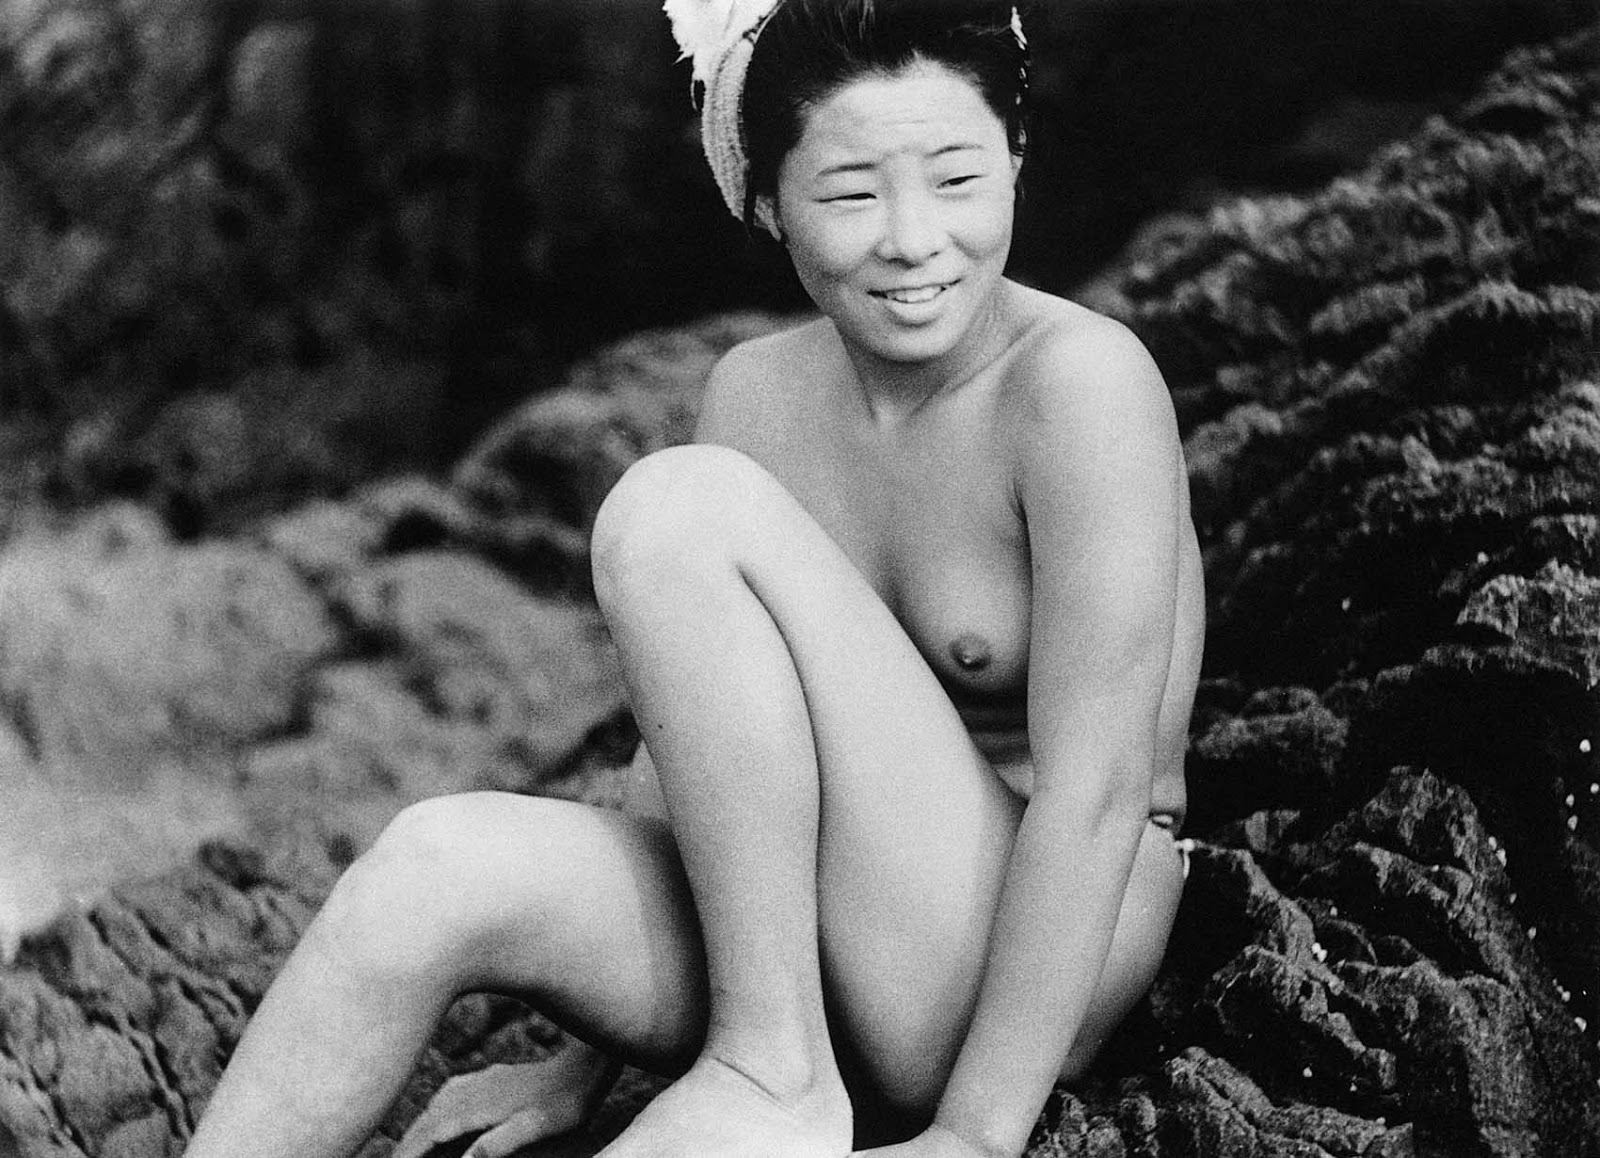 With the introduction of the wetsuit to Japan in the 1970s, the sight of a half-naked ama diver became rare.